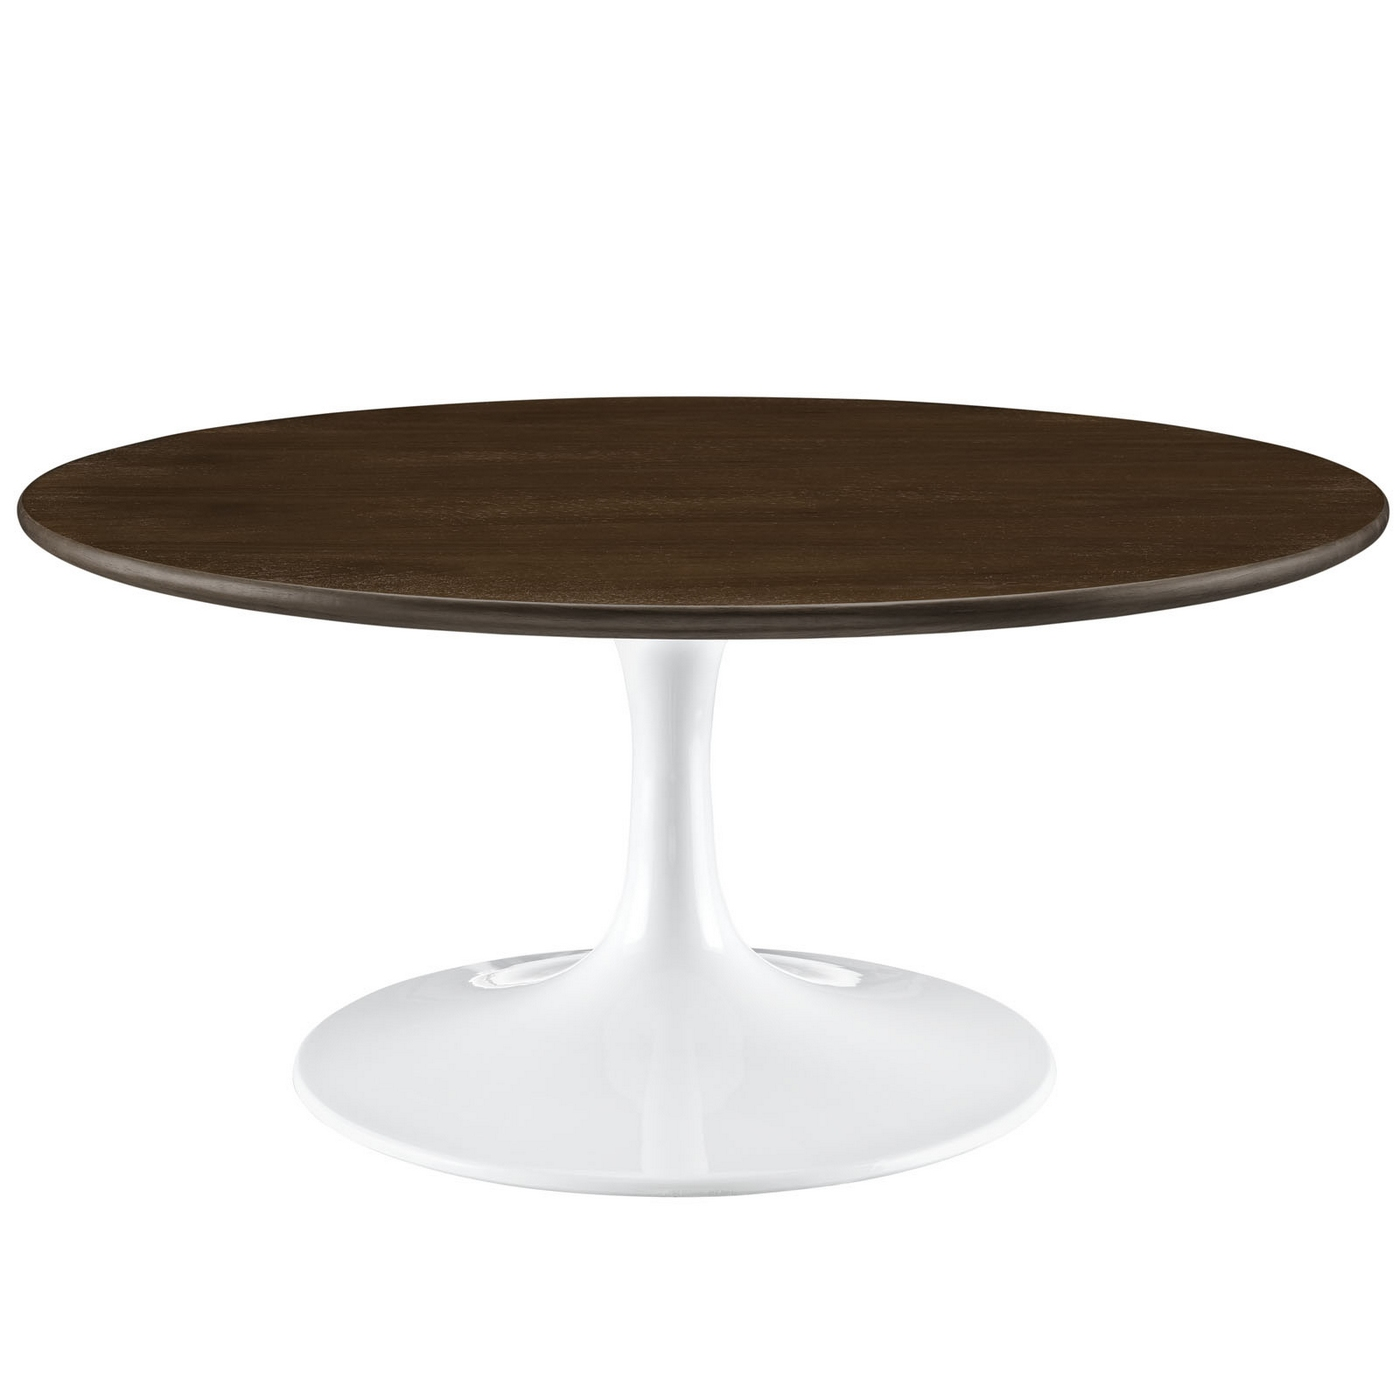 "Lippa Modern 36"" Round Walnut Coffee Table With Lacquered"